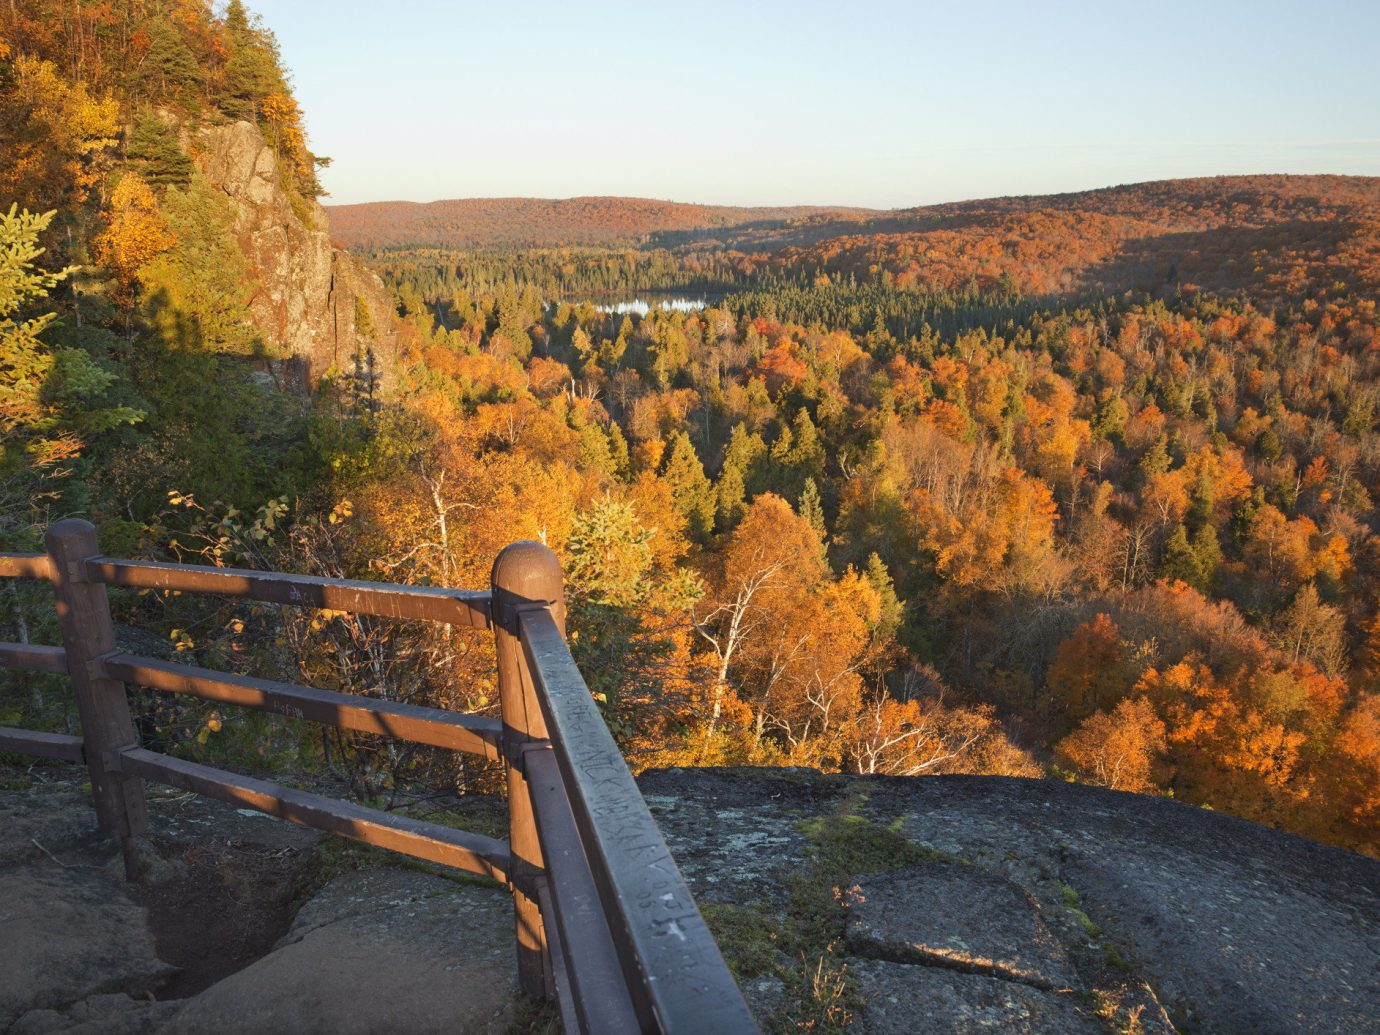 Outdoors + Adventure Road Trips Trip Ideas bench outdoor sky Nature leaf wilderness autumn tree mountain morning national park hill path park plant escarpment state park landscape road evening Forest valley Fence overlooking